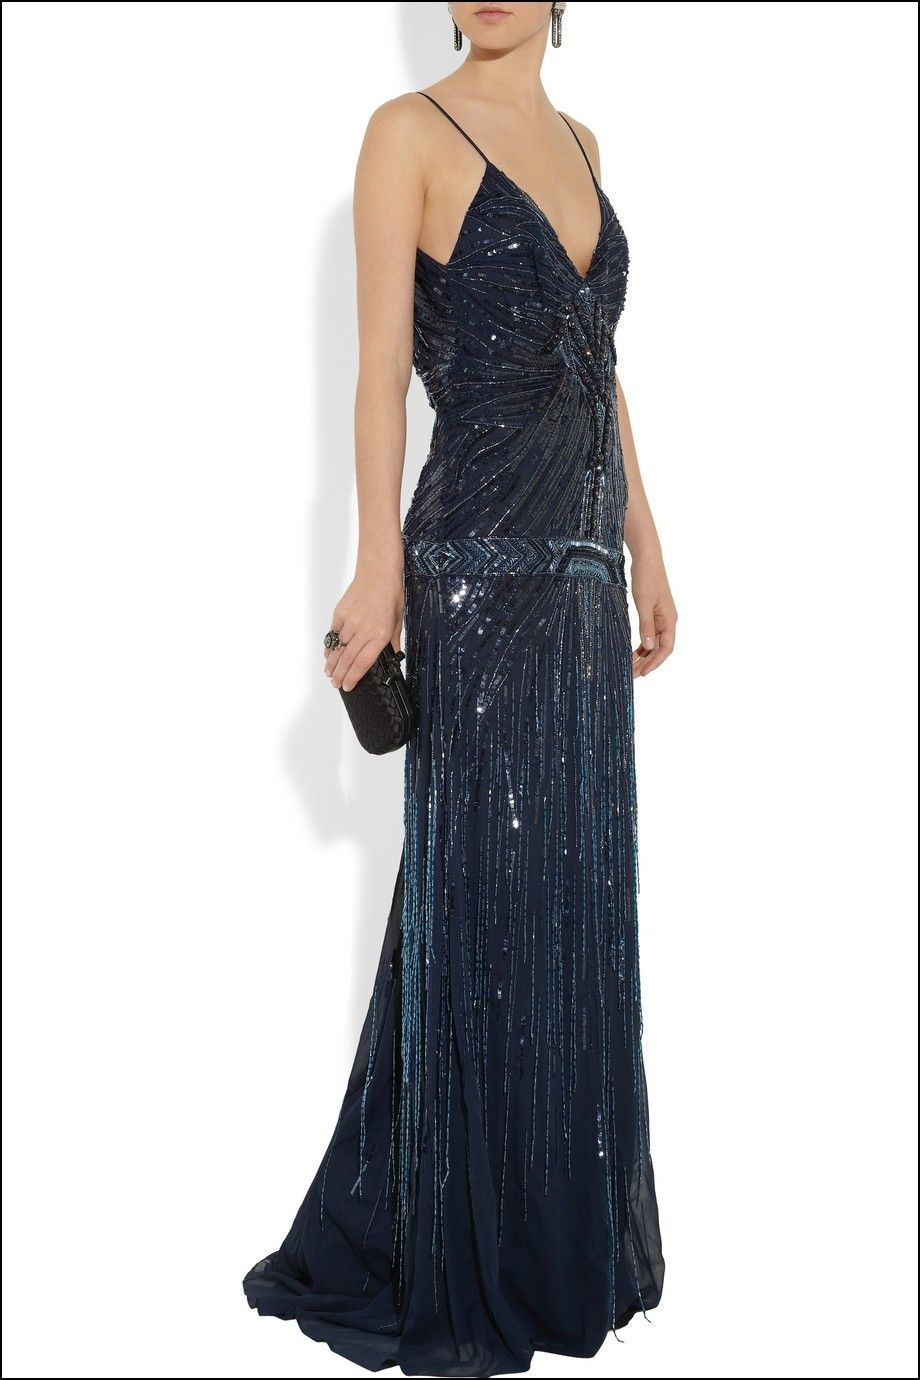 20s Style Evening Dresses Evening Dress Fashion 1920s Fashion Ball Gowns [ 1380 x 920 Pixel ]